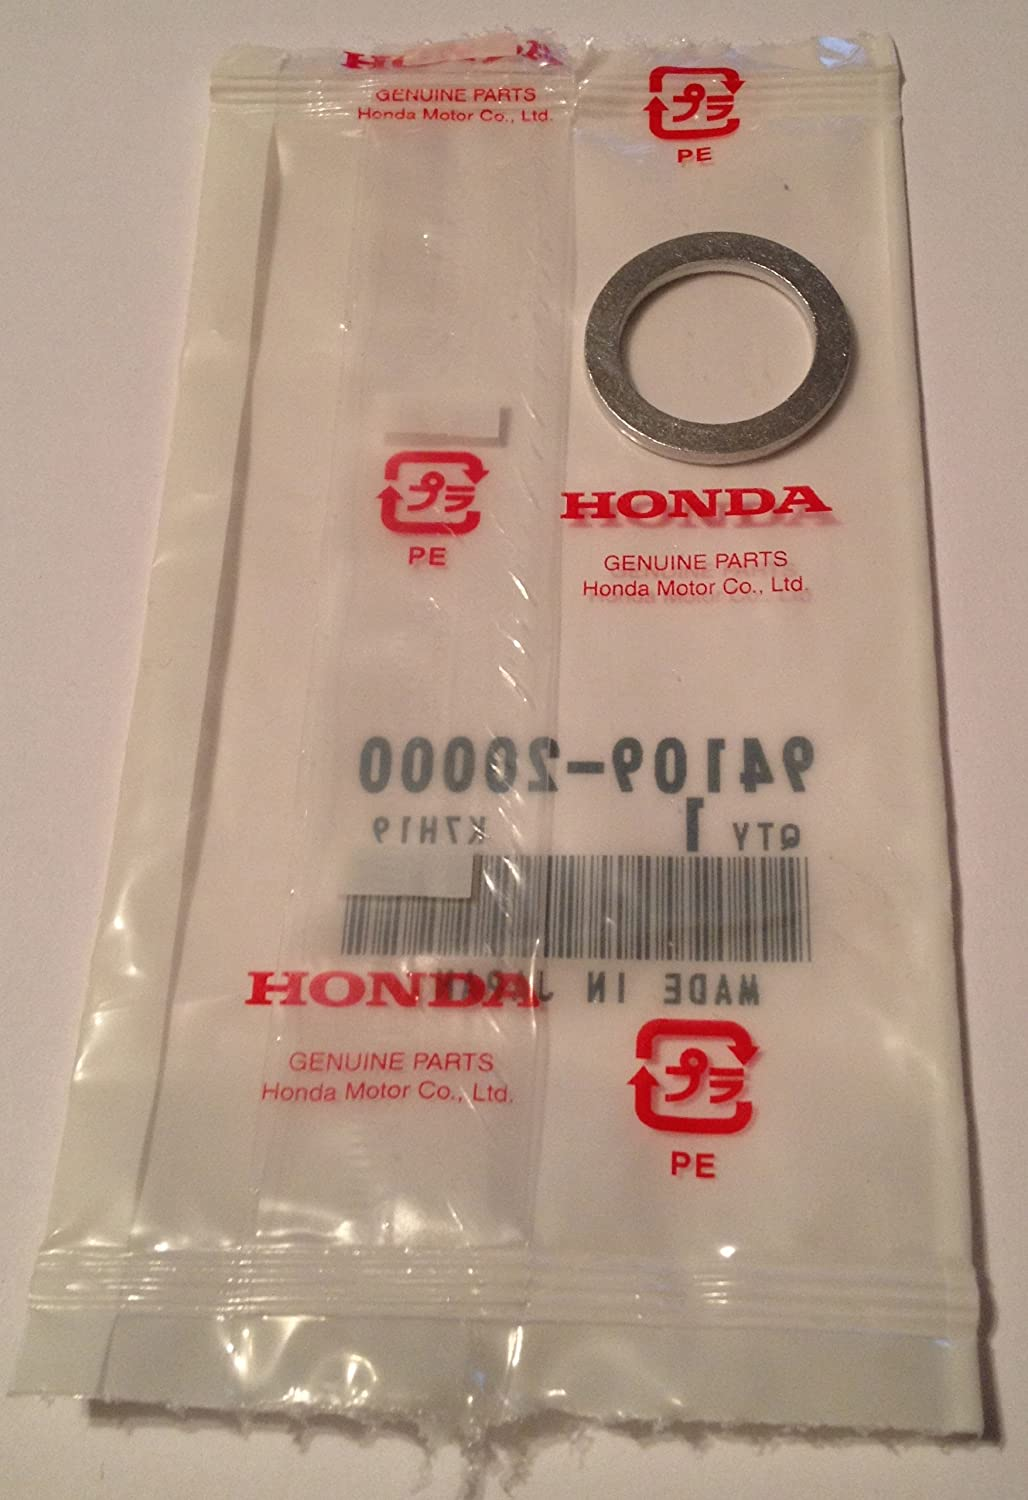 Honda Genuine Oem Rear Differential Drain Fill Plug 2002 Crv Parts Washer 94109 20000 20mm Automotive